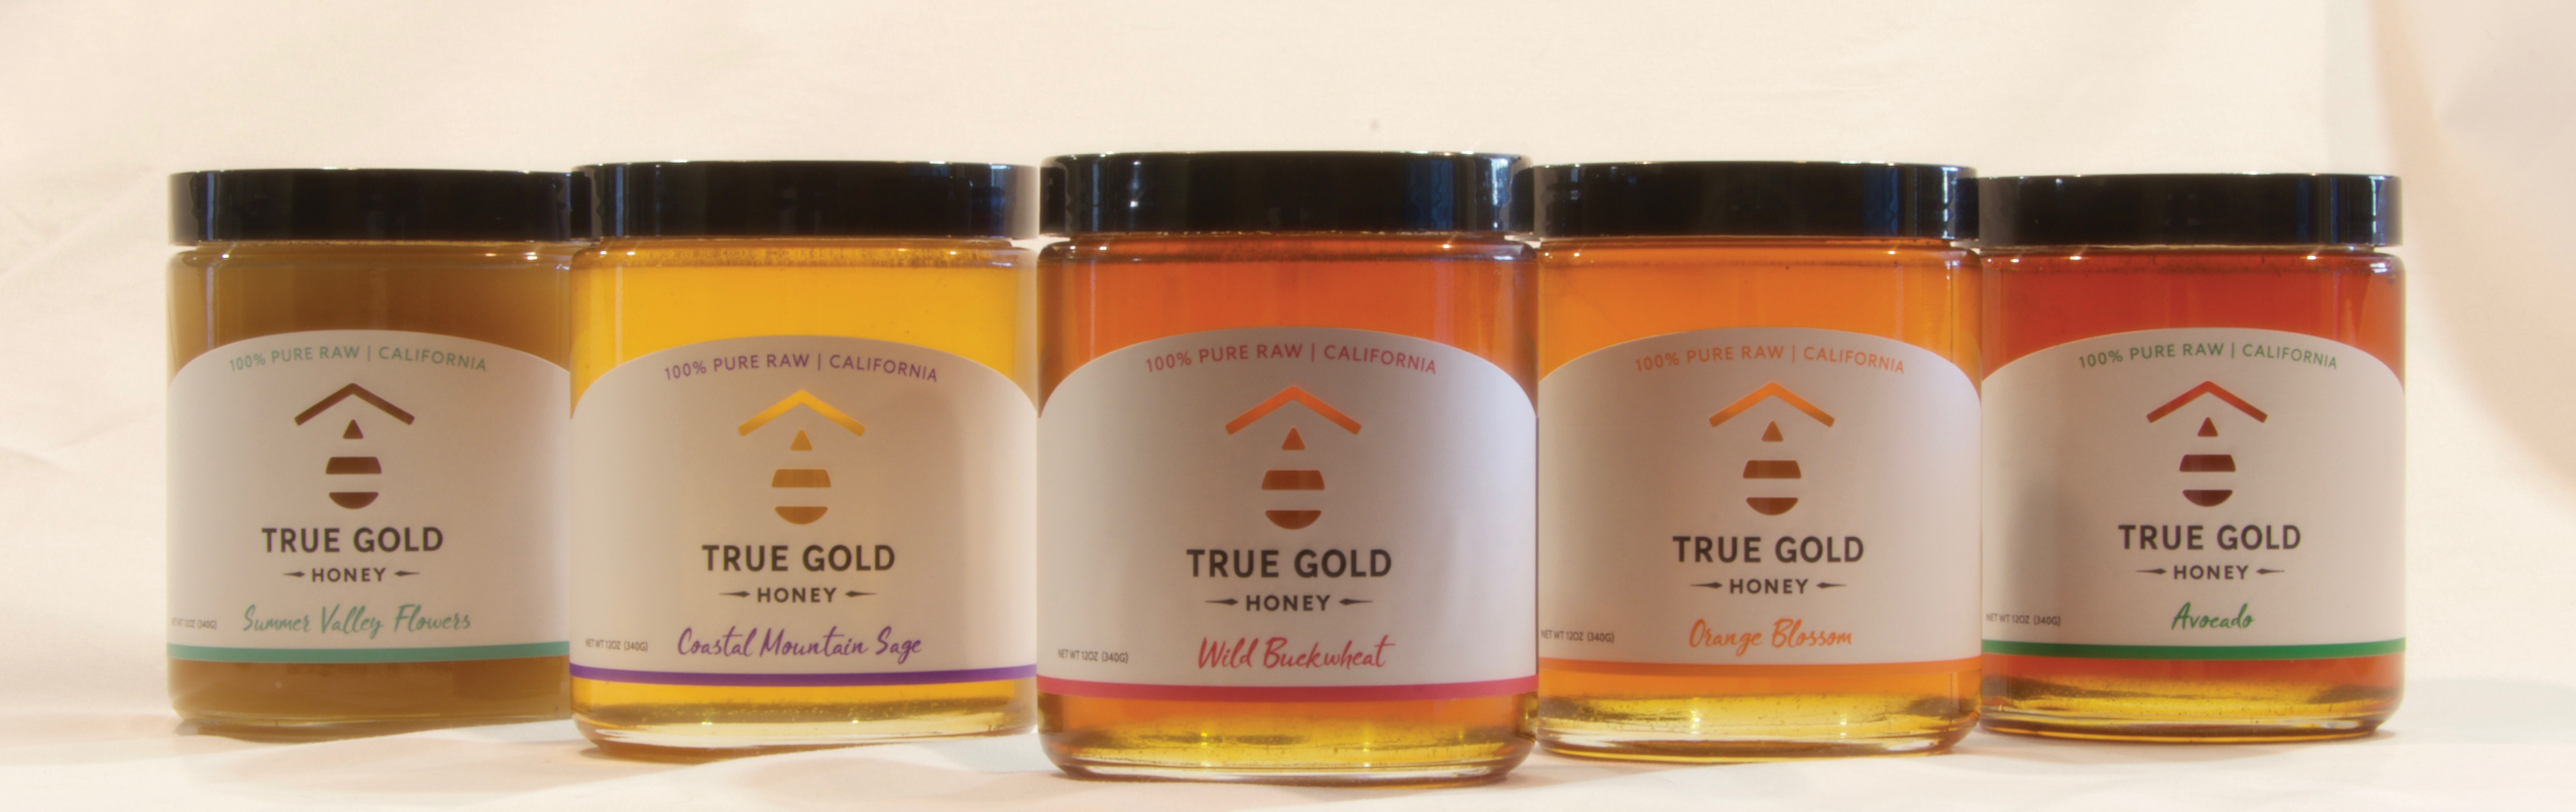 A family business as sweet as honey